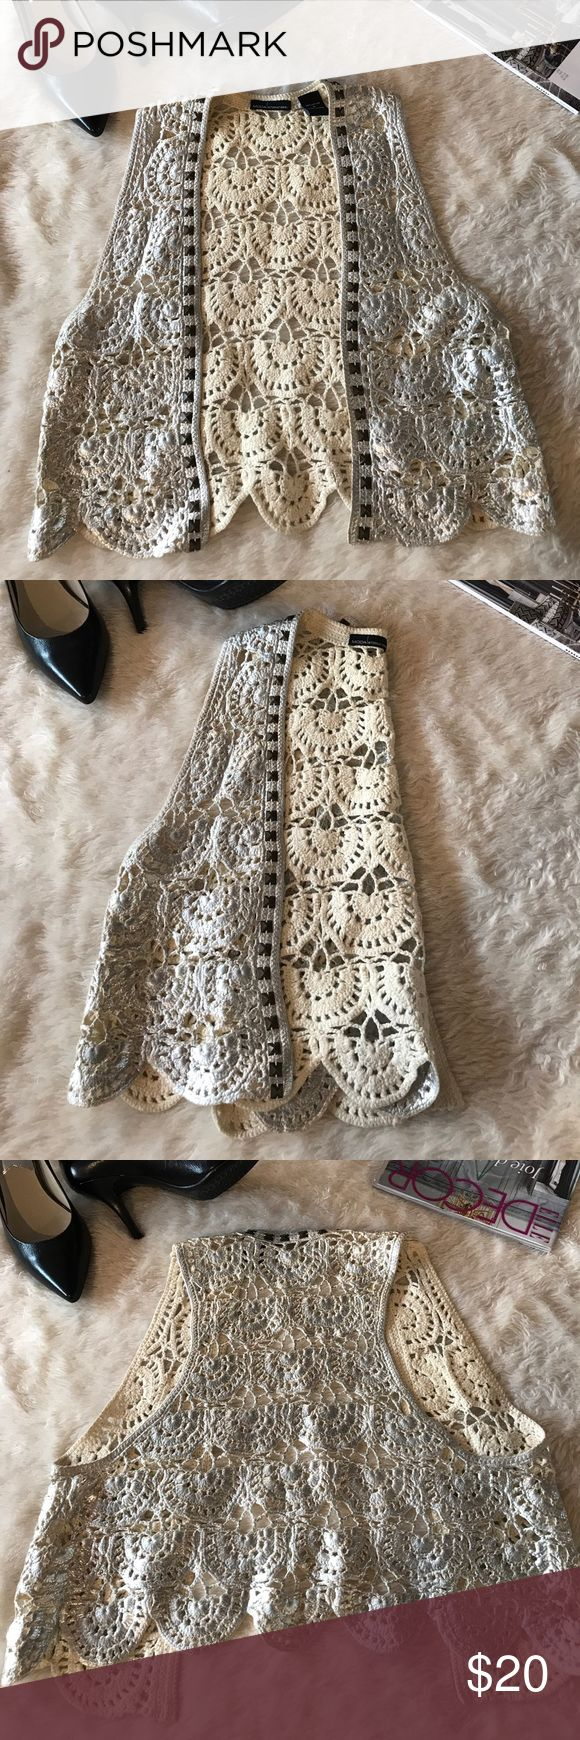 Moda International Crochet Silver Vest Like new moda international crochet silver vest.  Vest has stunning silver color with studded bead work along the trim. Vest measures approx 18inches long. Pit to pit measures approx 17inches wide. Moda International Jackets & Coats Vests